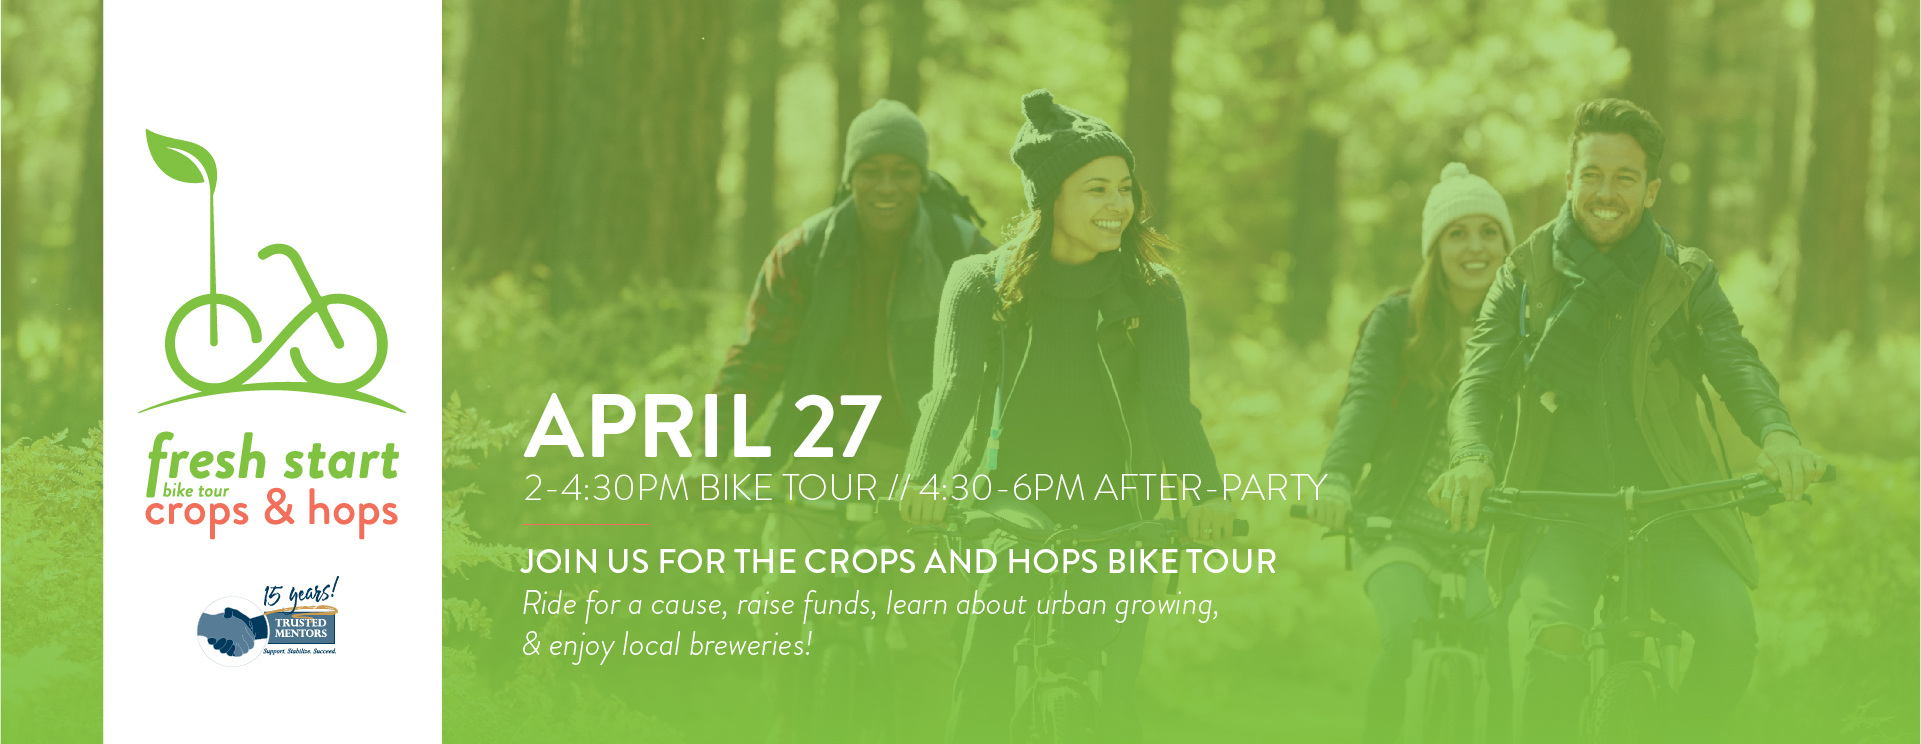 Fresh Start Bike Tour 2019: Crops and Hops